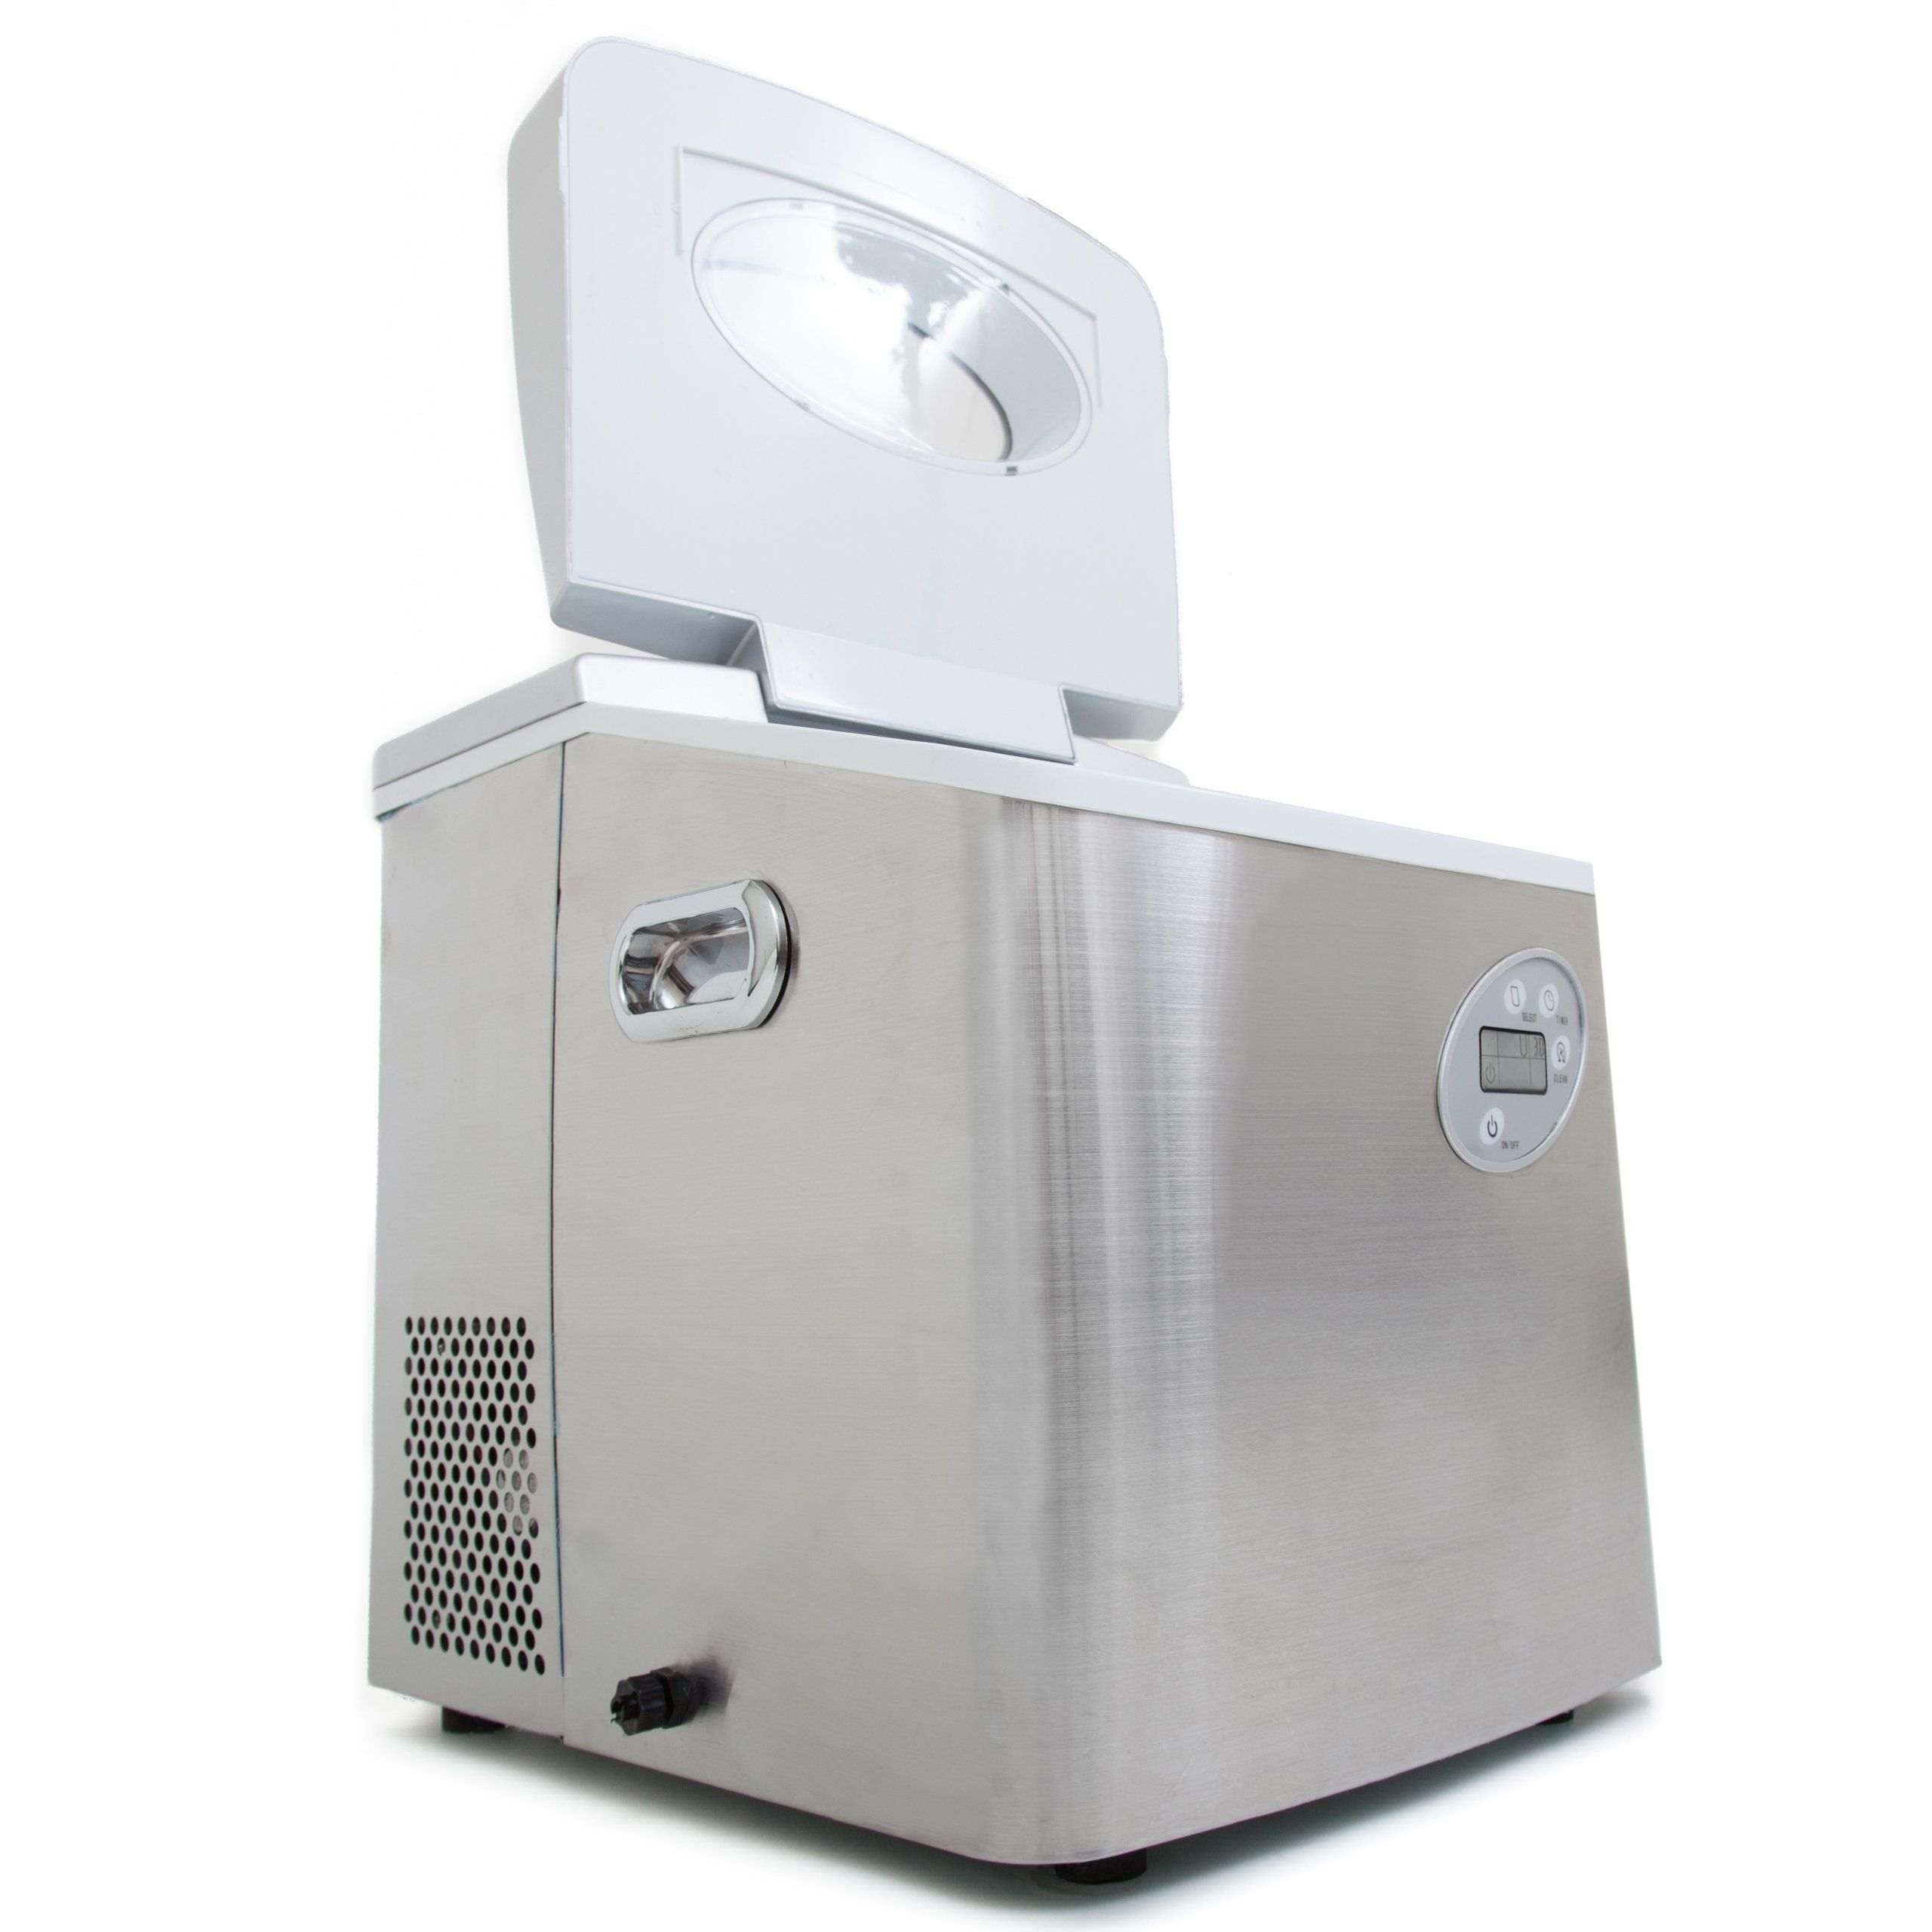 Whynter Imc490ss Portable Ice Maker 49pound Stainless Steel Learn More By Visiting The Image Link This Is An Portable Ice Maker Ice Maker Washing Machine